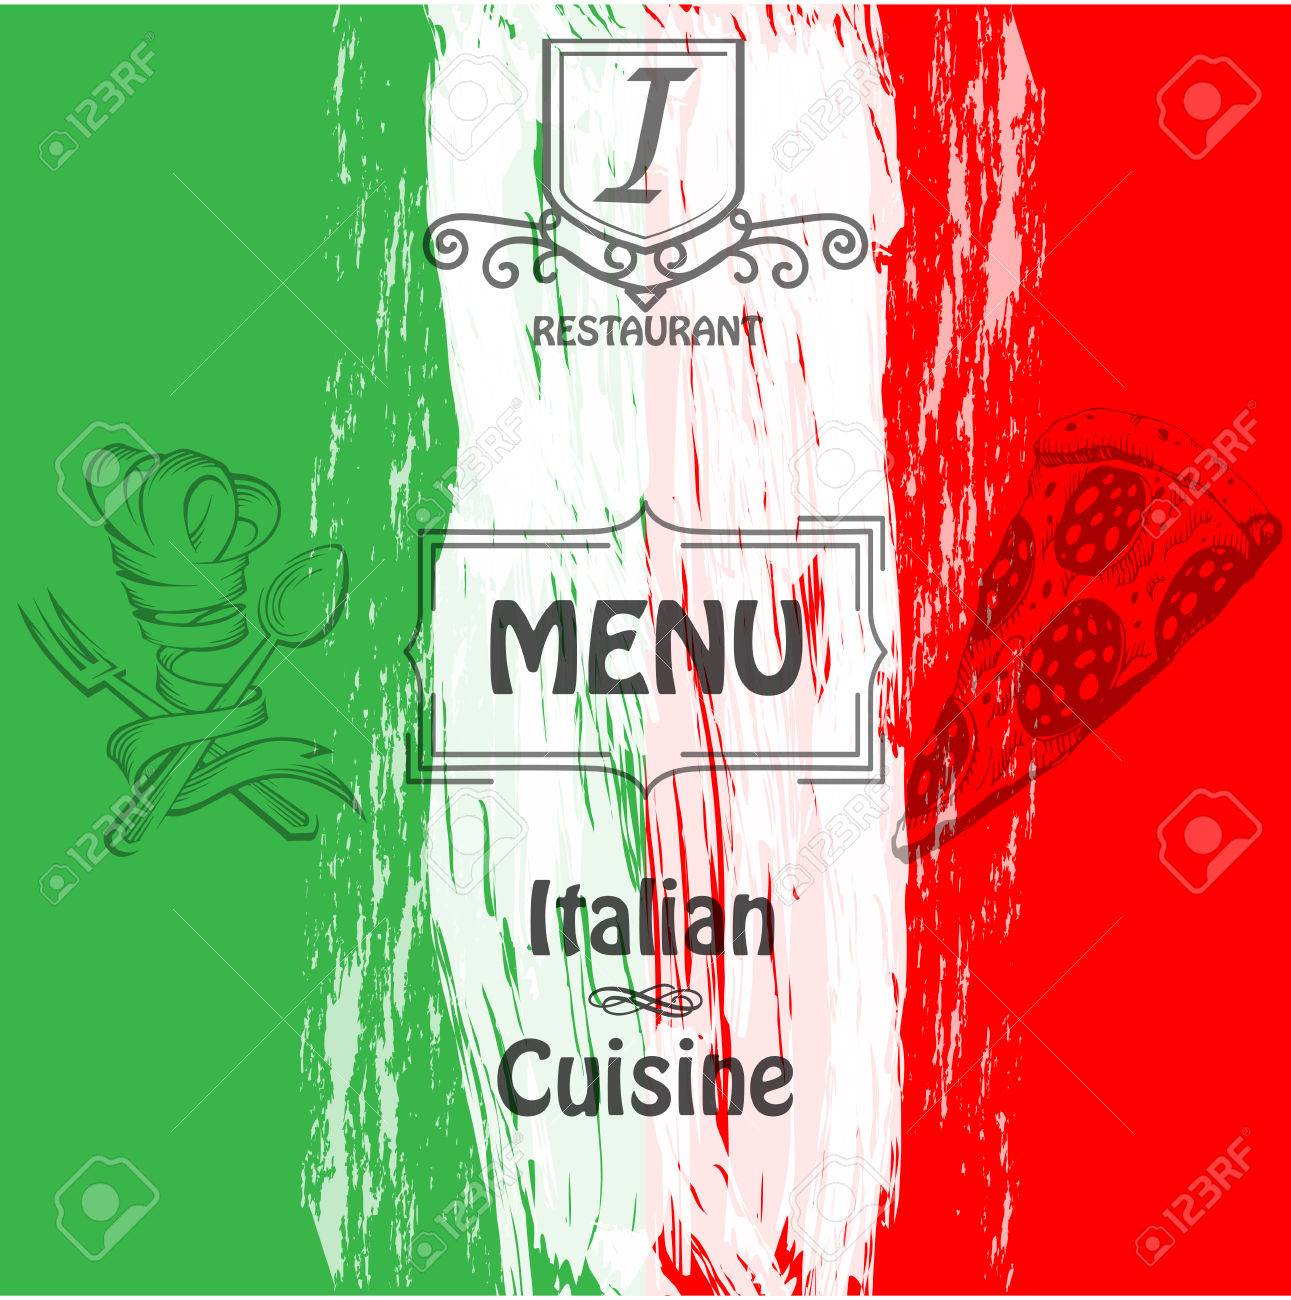 menu. cover for restaurants and cafes italian cuisine. logo. royalty